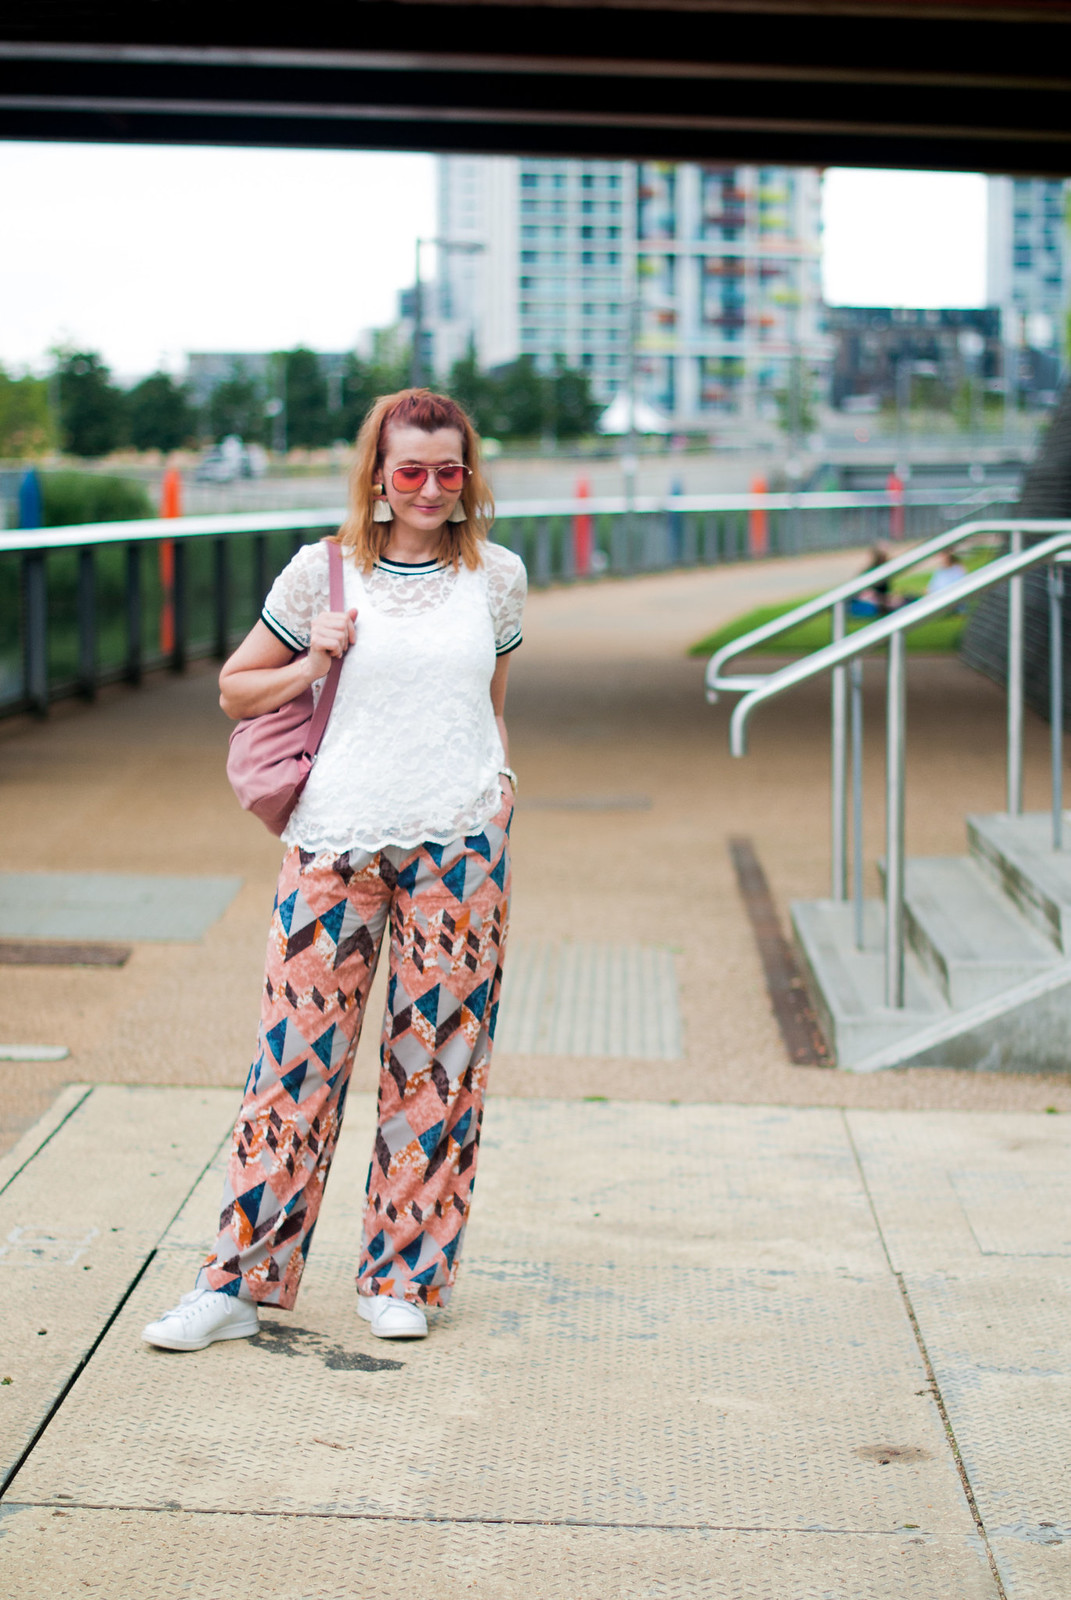 Bold, colourful summer dressing: White lace top \ pyjama-style patterned trousers pants \ white Stan Smiths \ statement tassel earrings \ orange aviators \ pink suede backpack | Not Dressed As Lamb, over 40 style blog